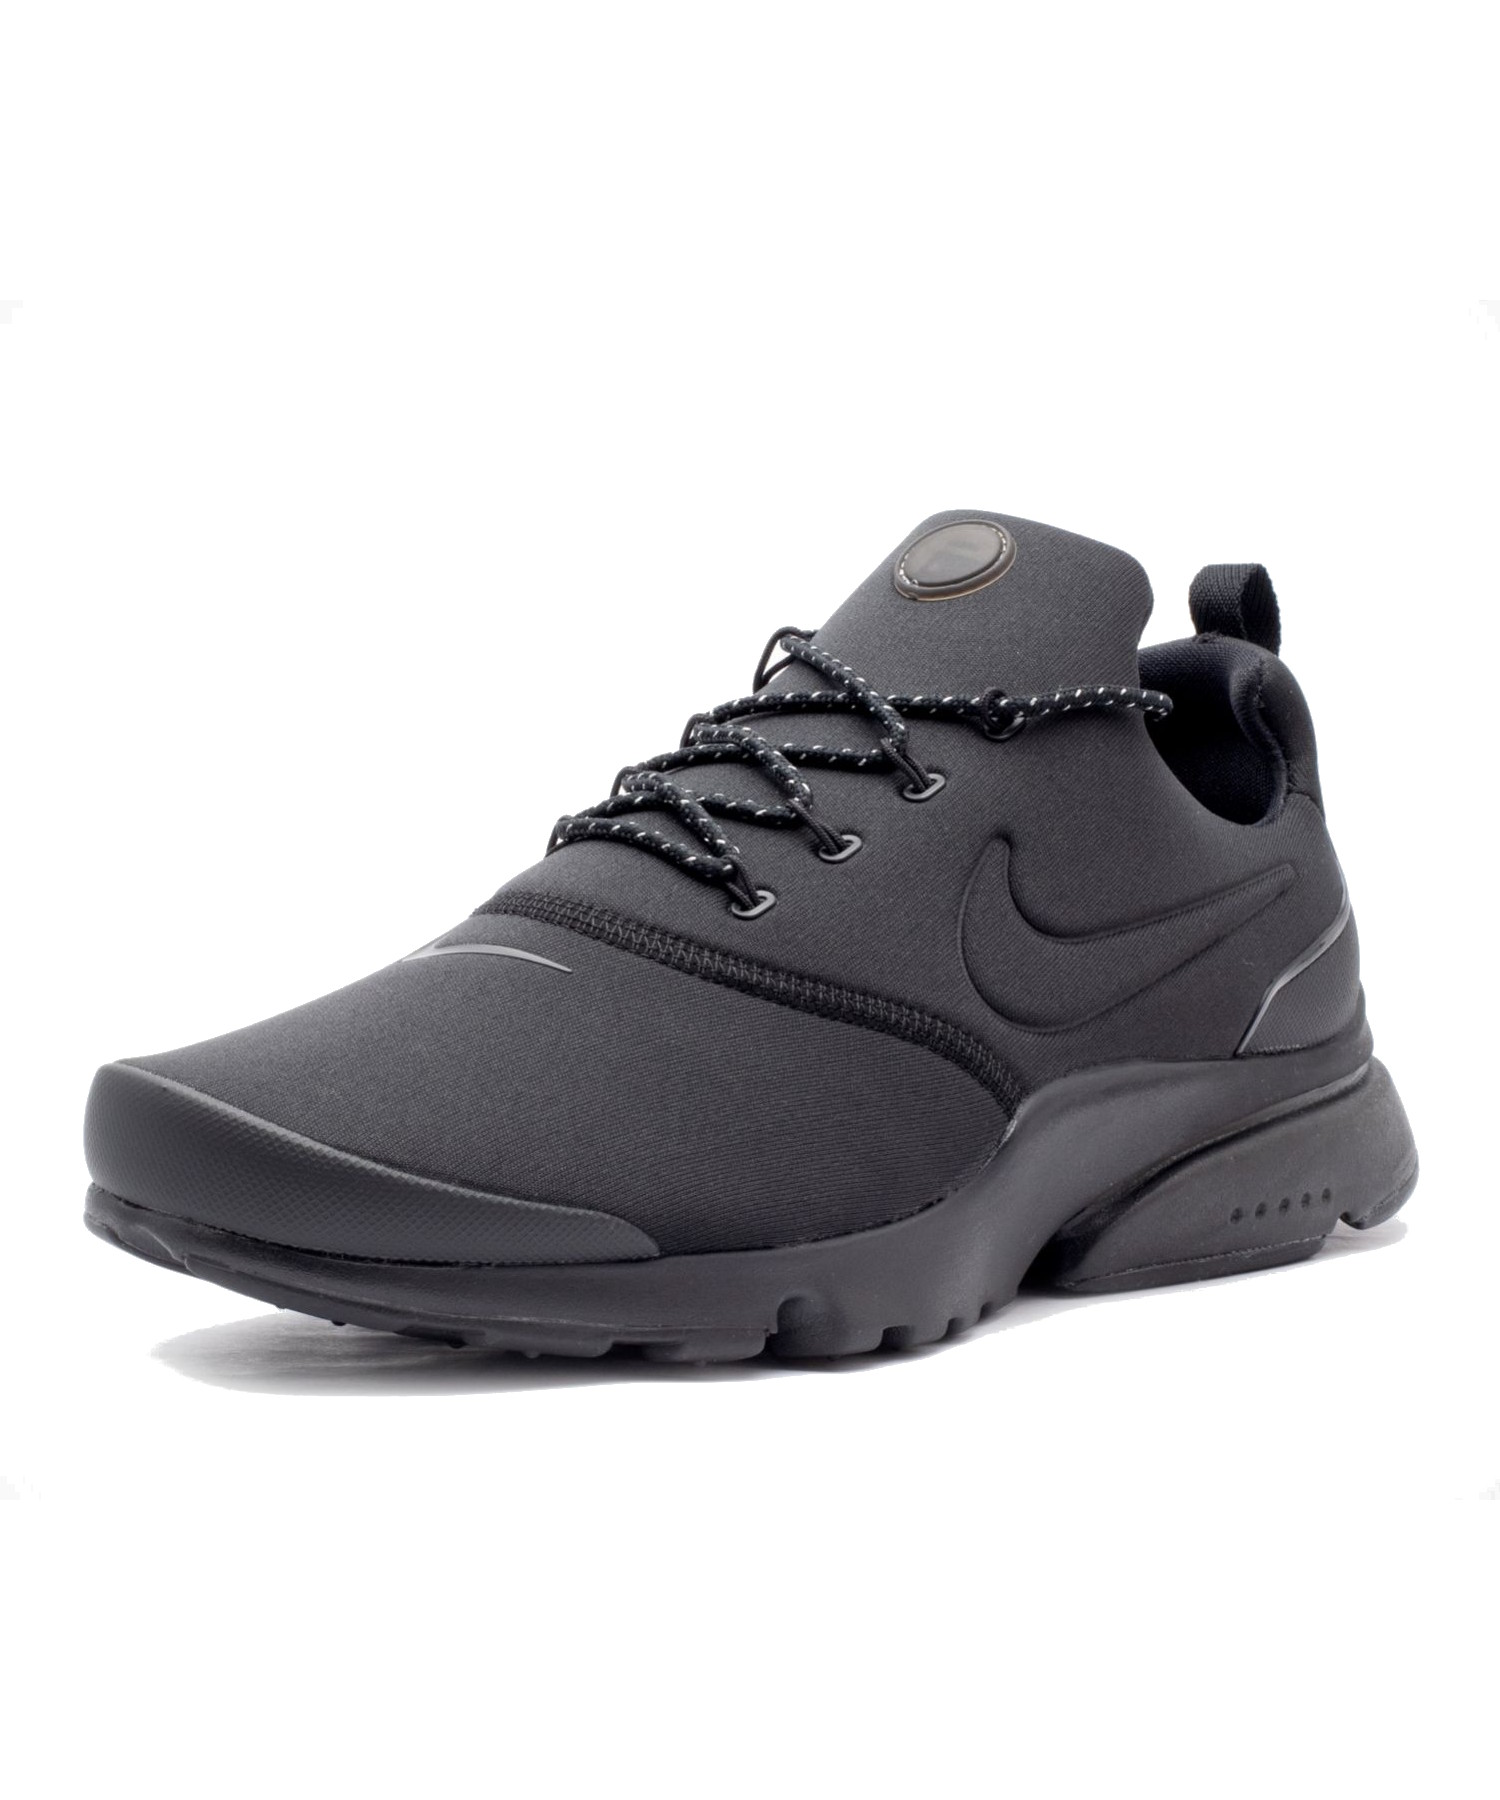 brand new 36748 66149 Nike-Chaussures-sportif-Mesh-Sneakers-Shoes-Sport-Air-